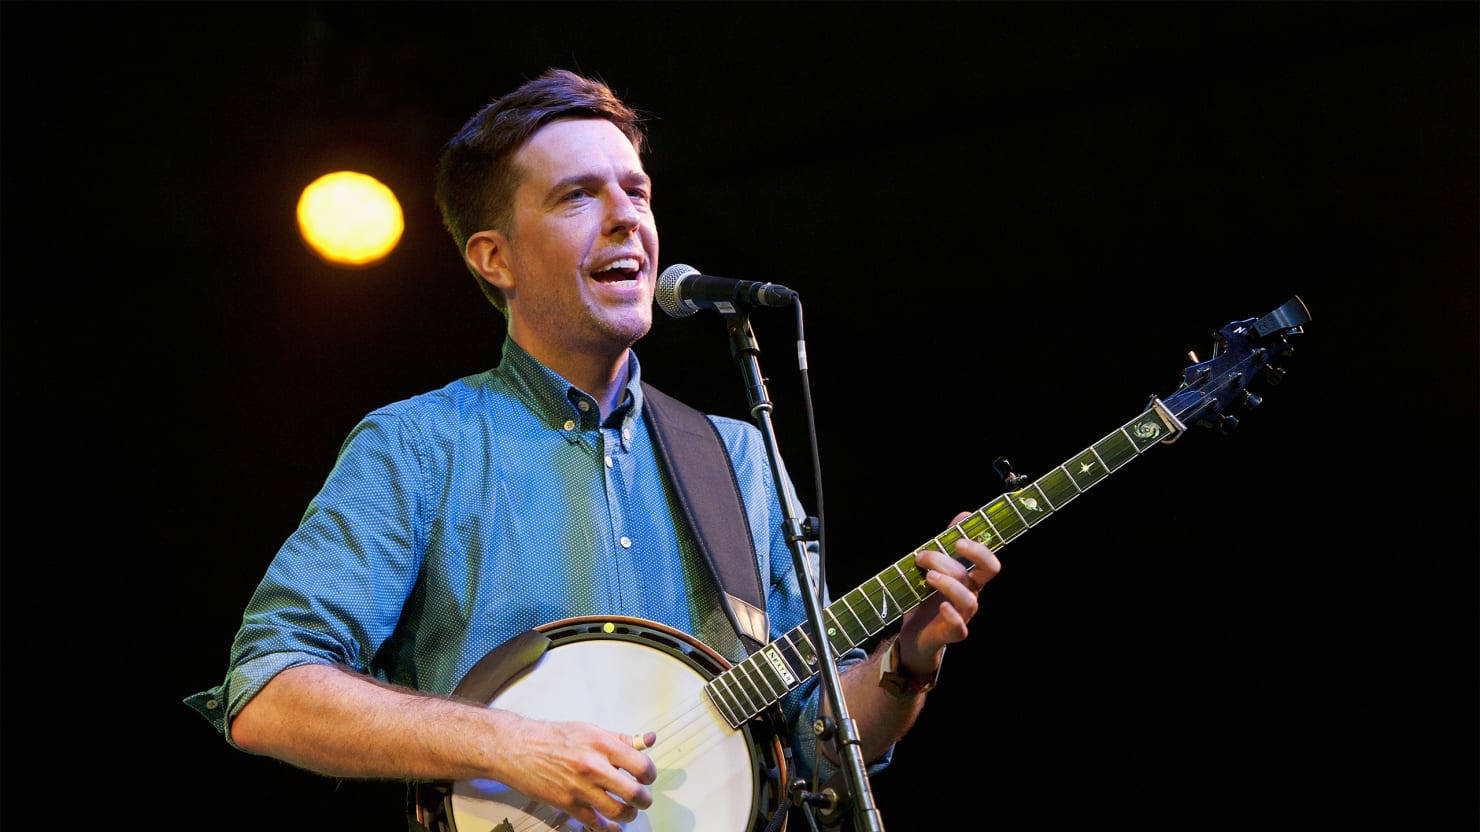 ed helms on his bluegrass supergroup and banjoplucking skills